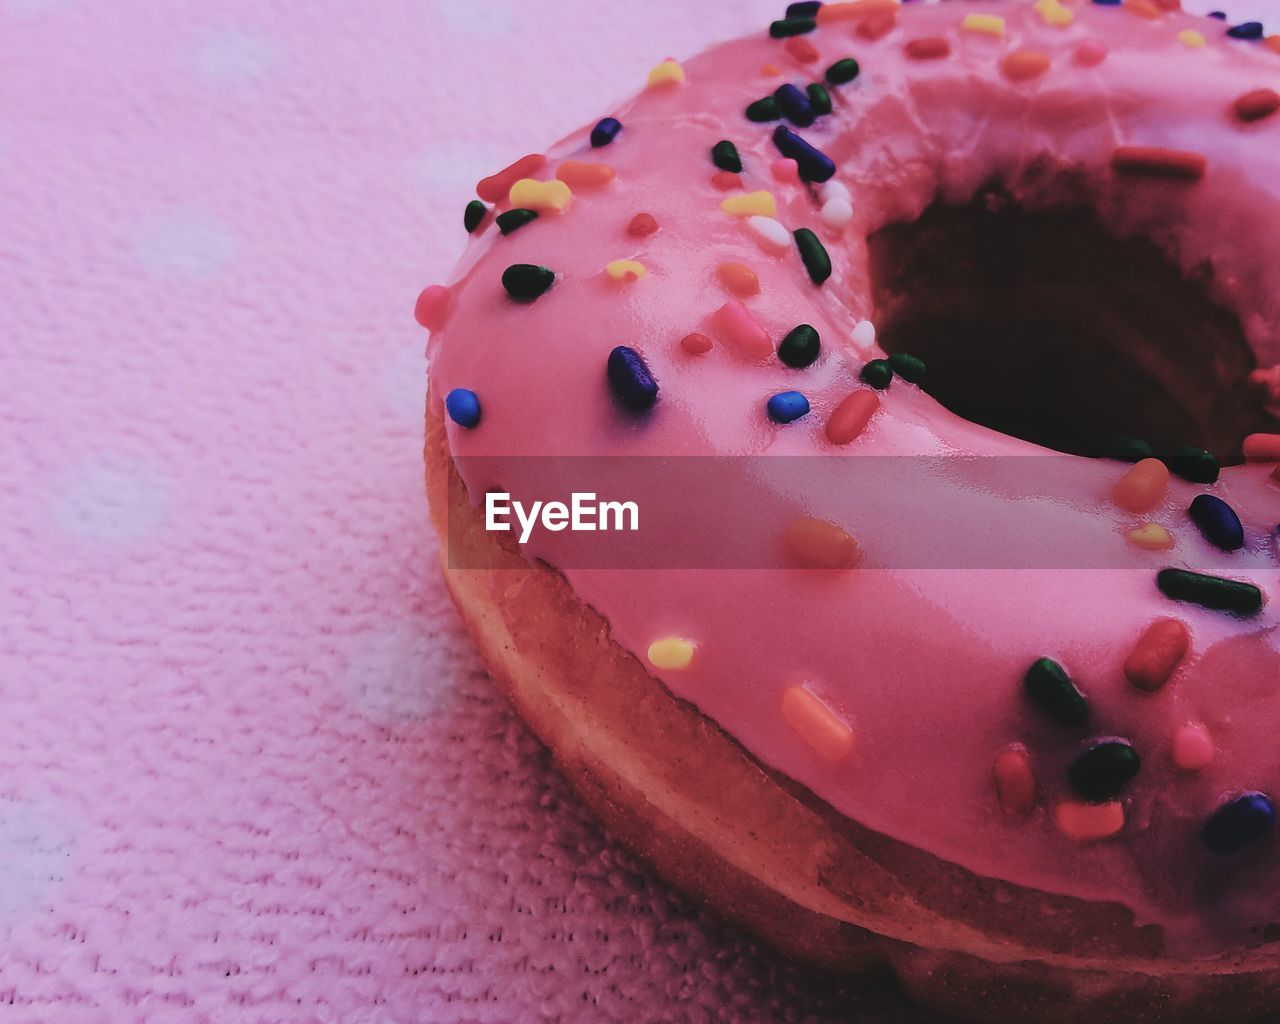 sweet food, food and drink, dessert, indulgence, food, temptation, unhealthy eating, ready-to-eat, cake, still life, chocolate, freshness, indoors, close-up, baked, no people, table, sprinkles, blueberry, cupcake, serving size, dessert topping, plate, donut, day, gelatin dessert